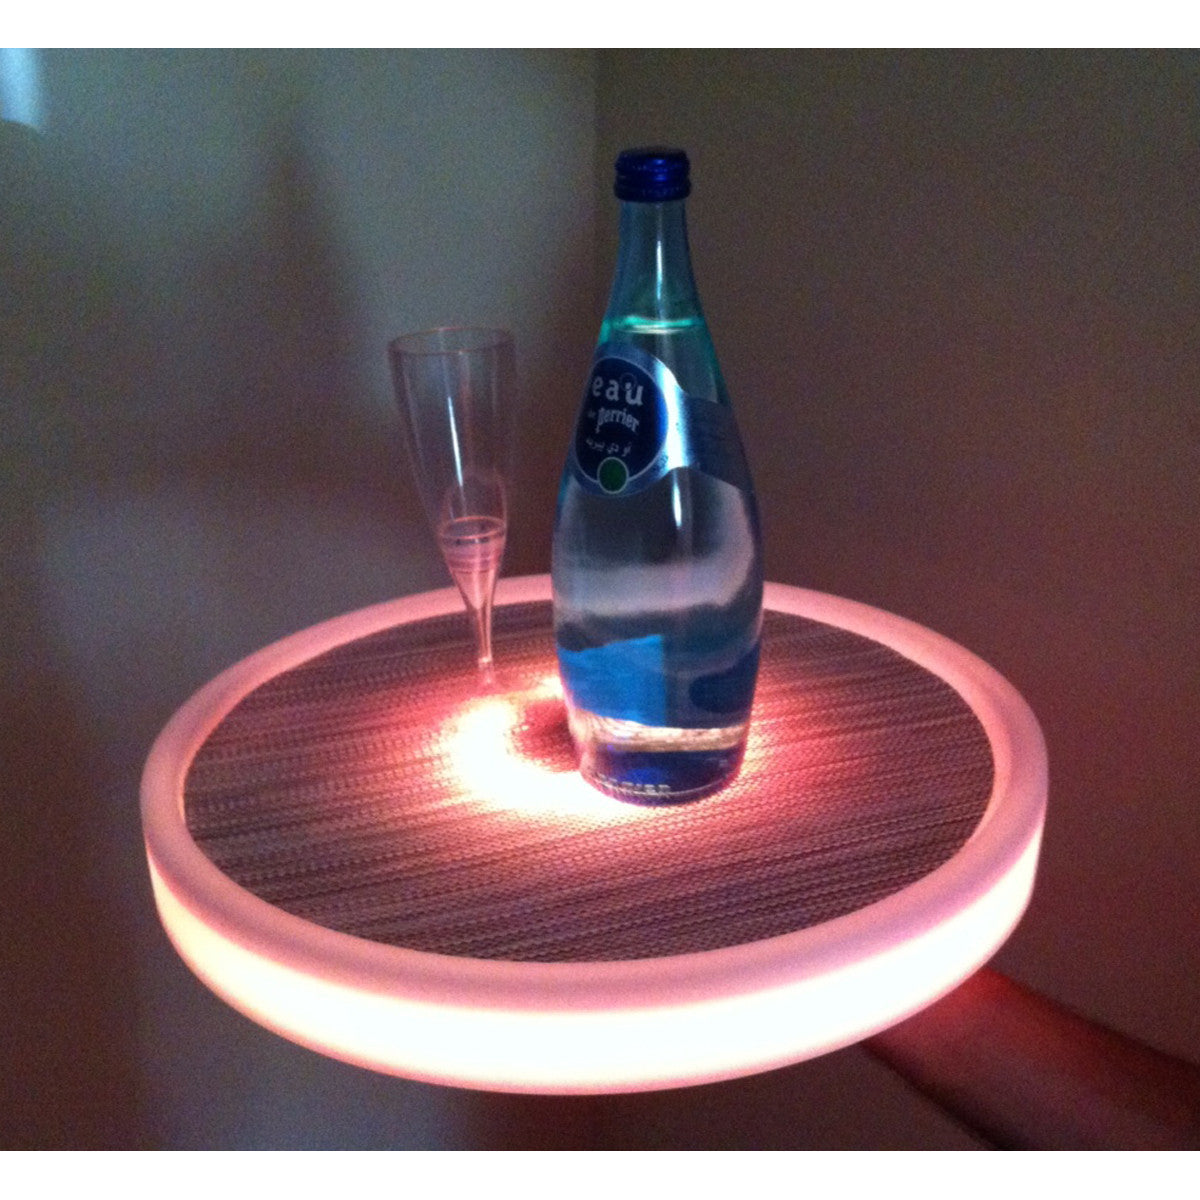 Imagilights Tron LED round serving tray